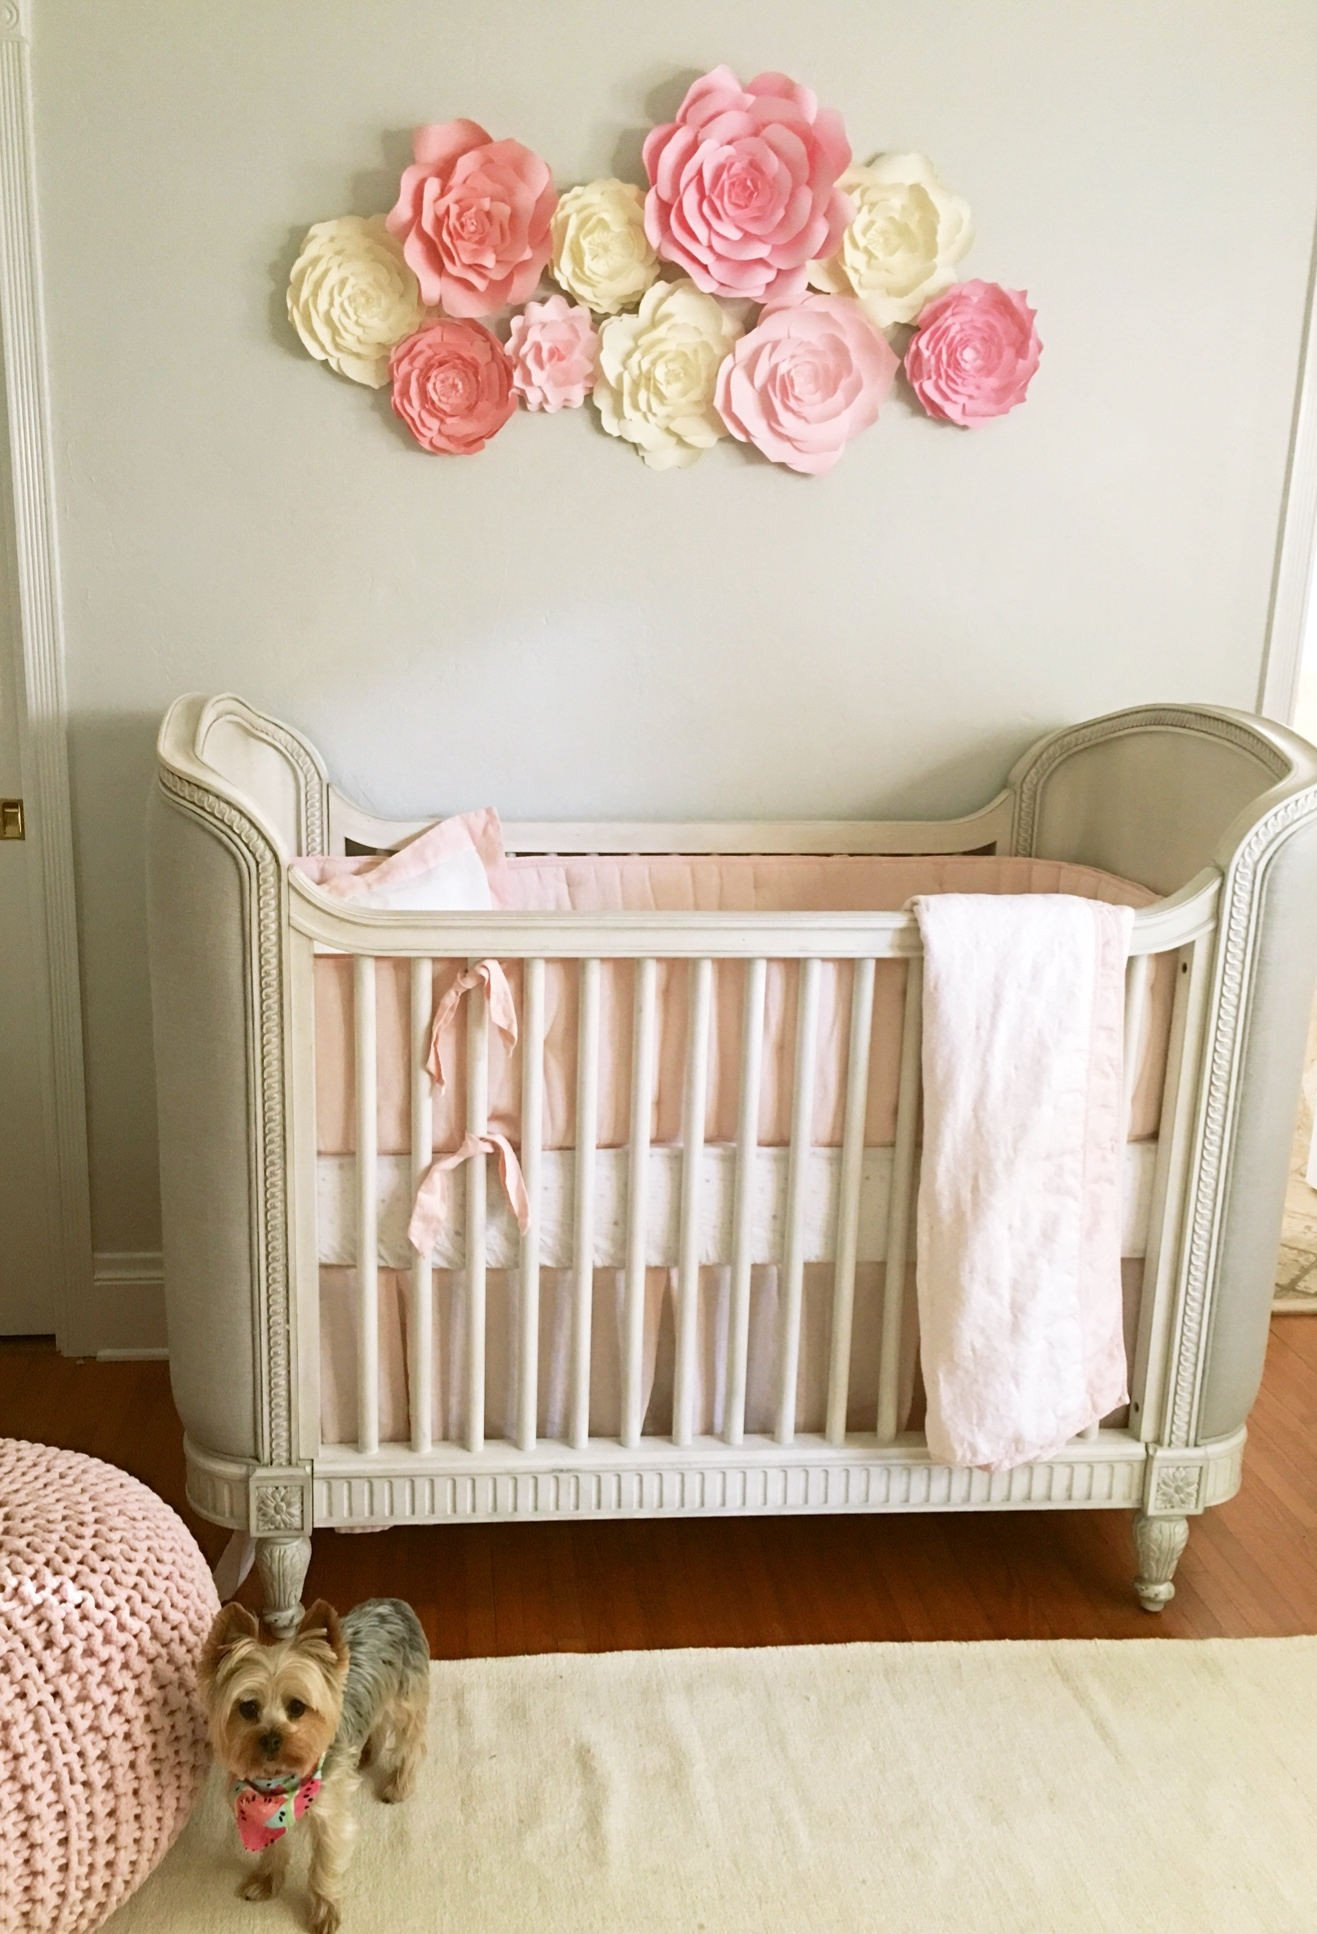 Baby Room Wall Decor Ideas Lovely Baby Nursery Wall Decor Paper Flowers for Girls Nursery